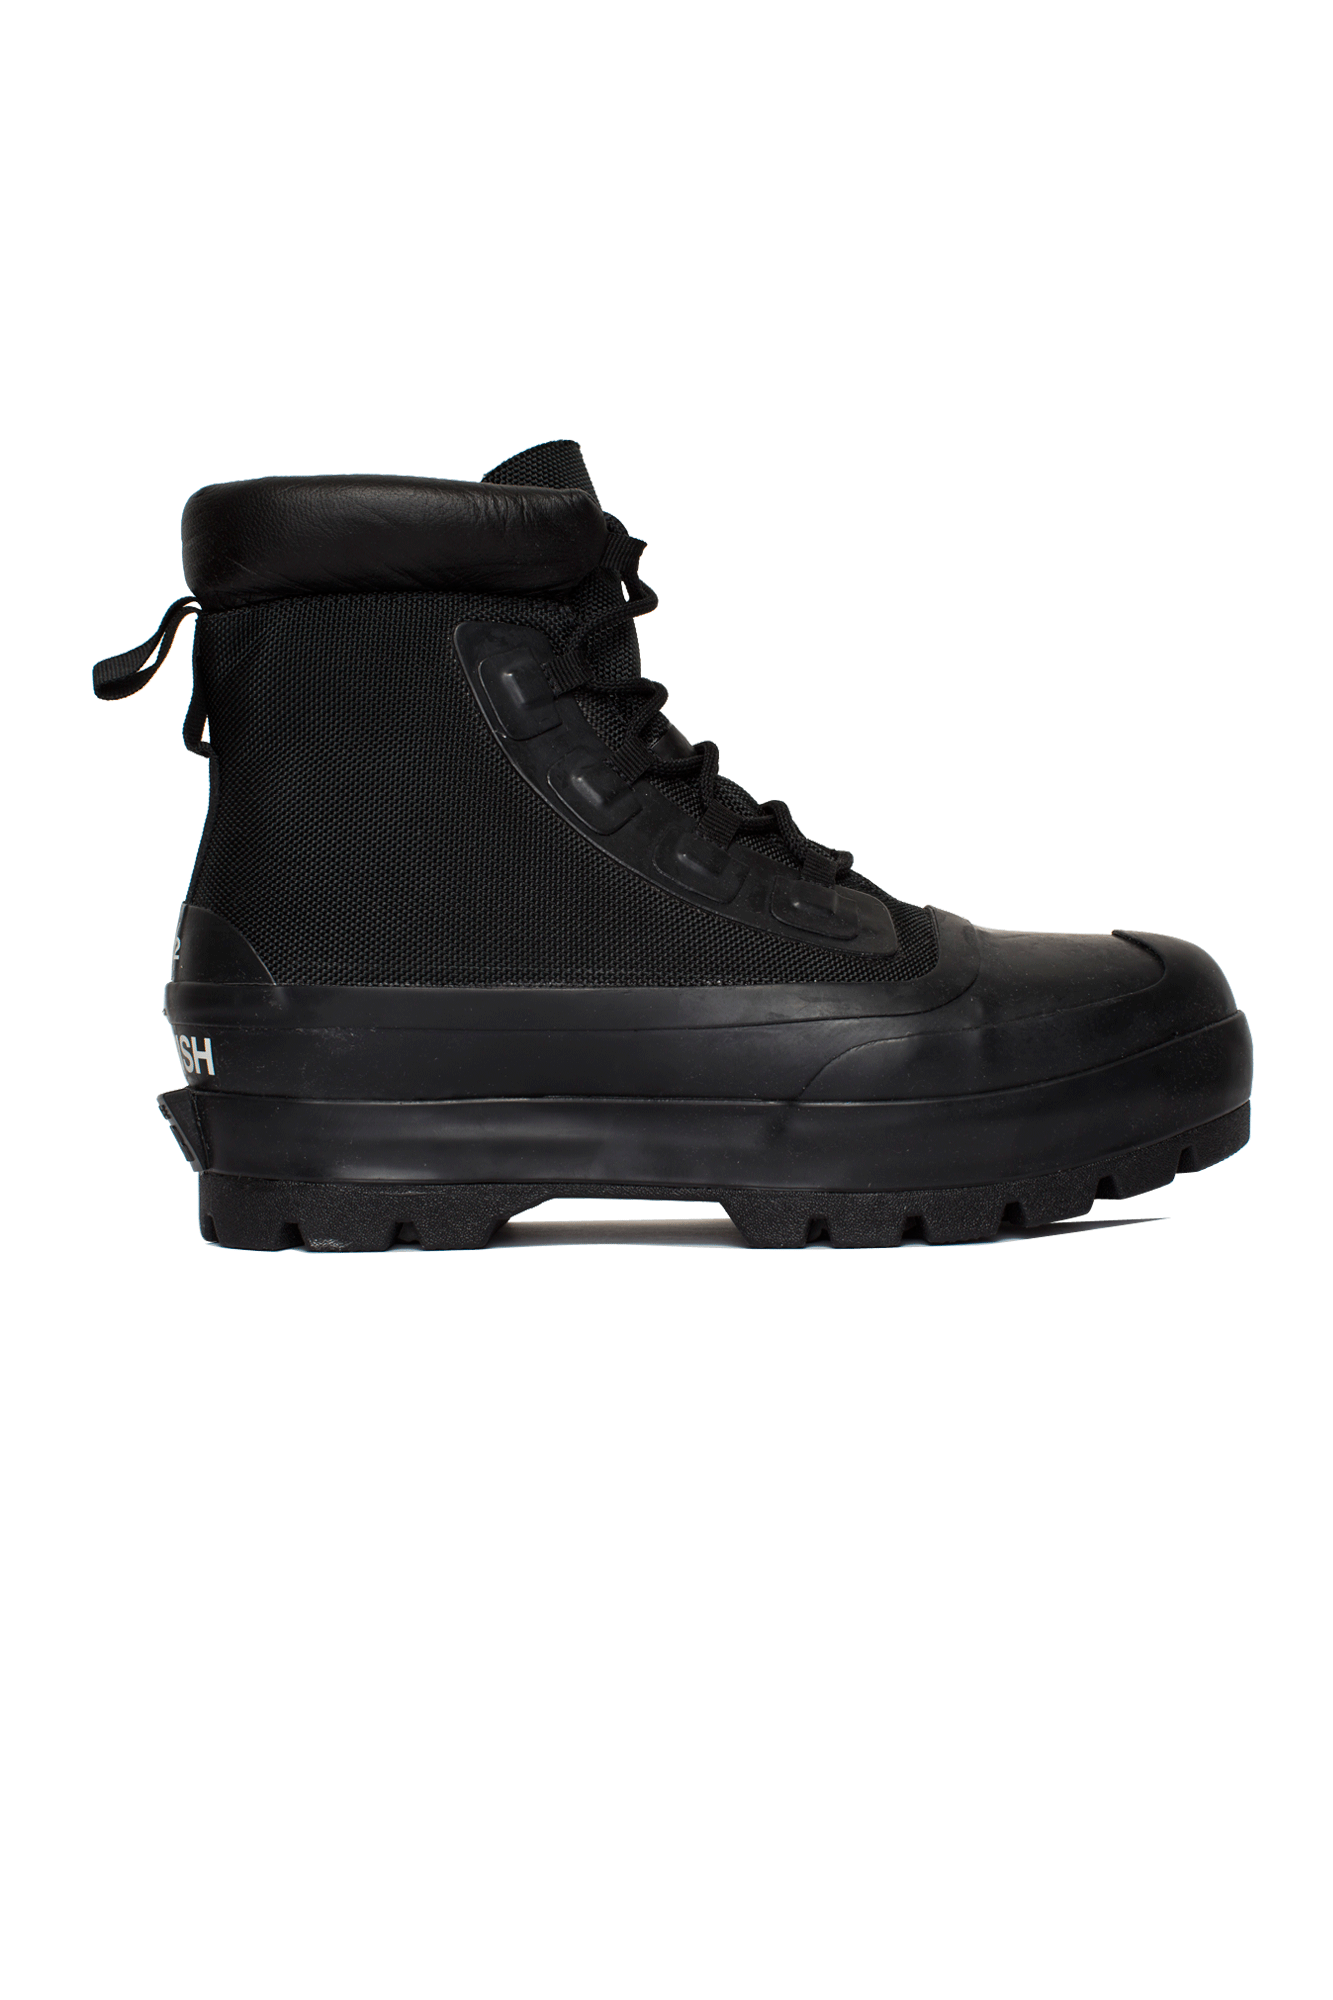 Converse Sneakers CTAS Duck Boot x Ambush Black 170588C#000#BLK#4 - One Block Down